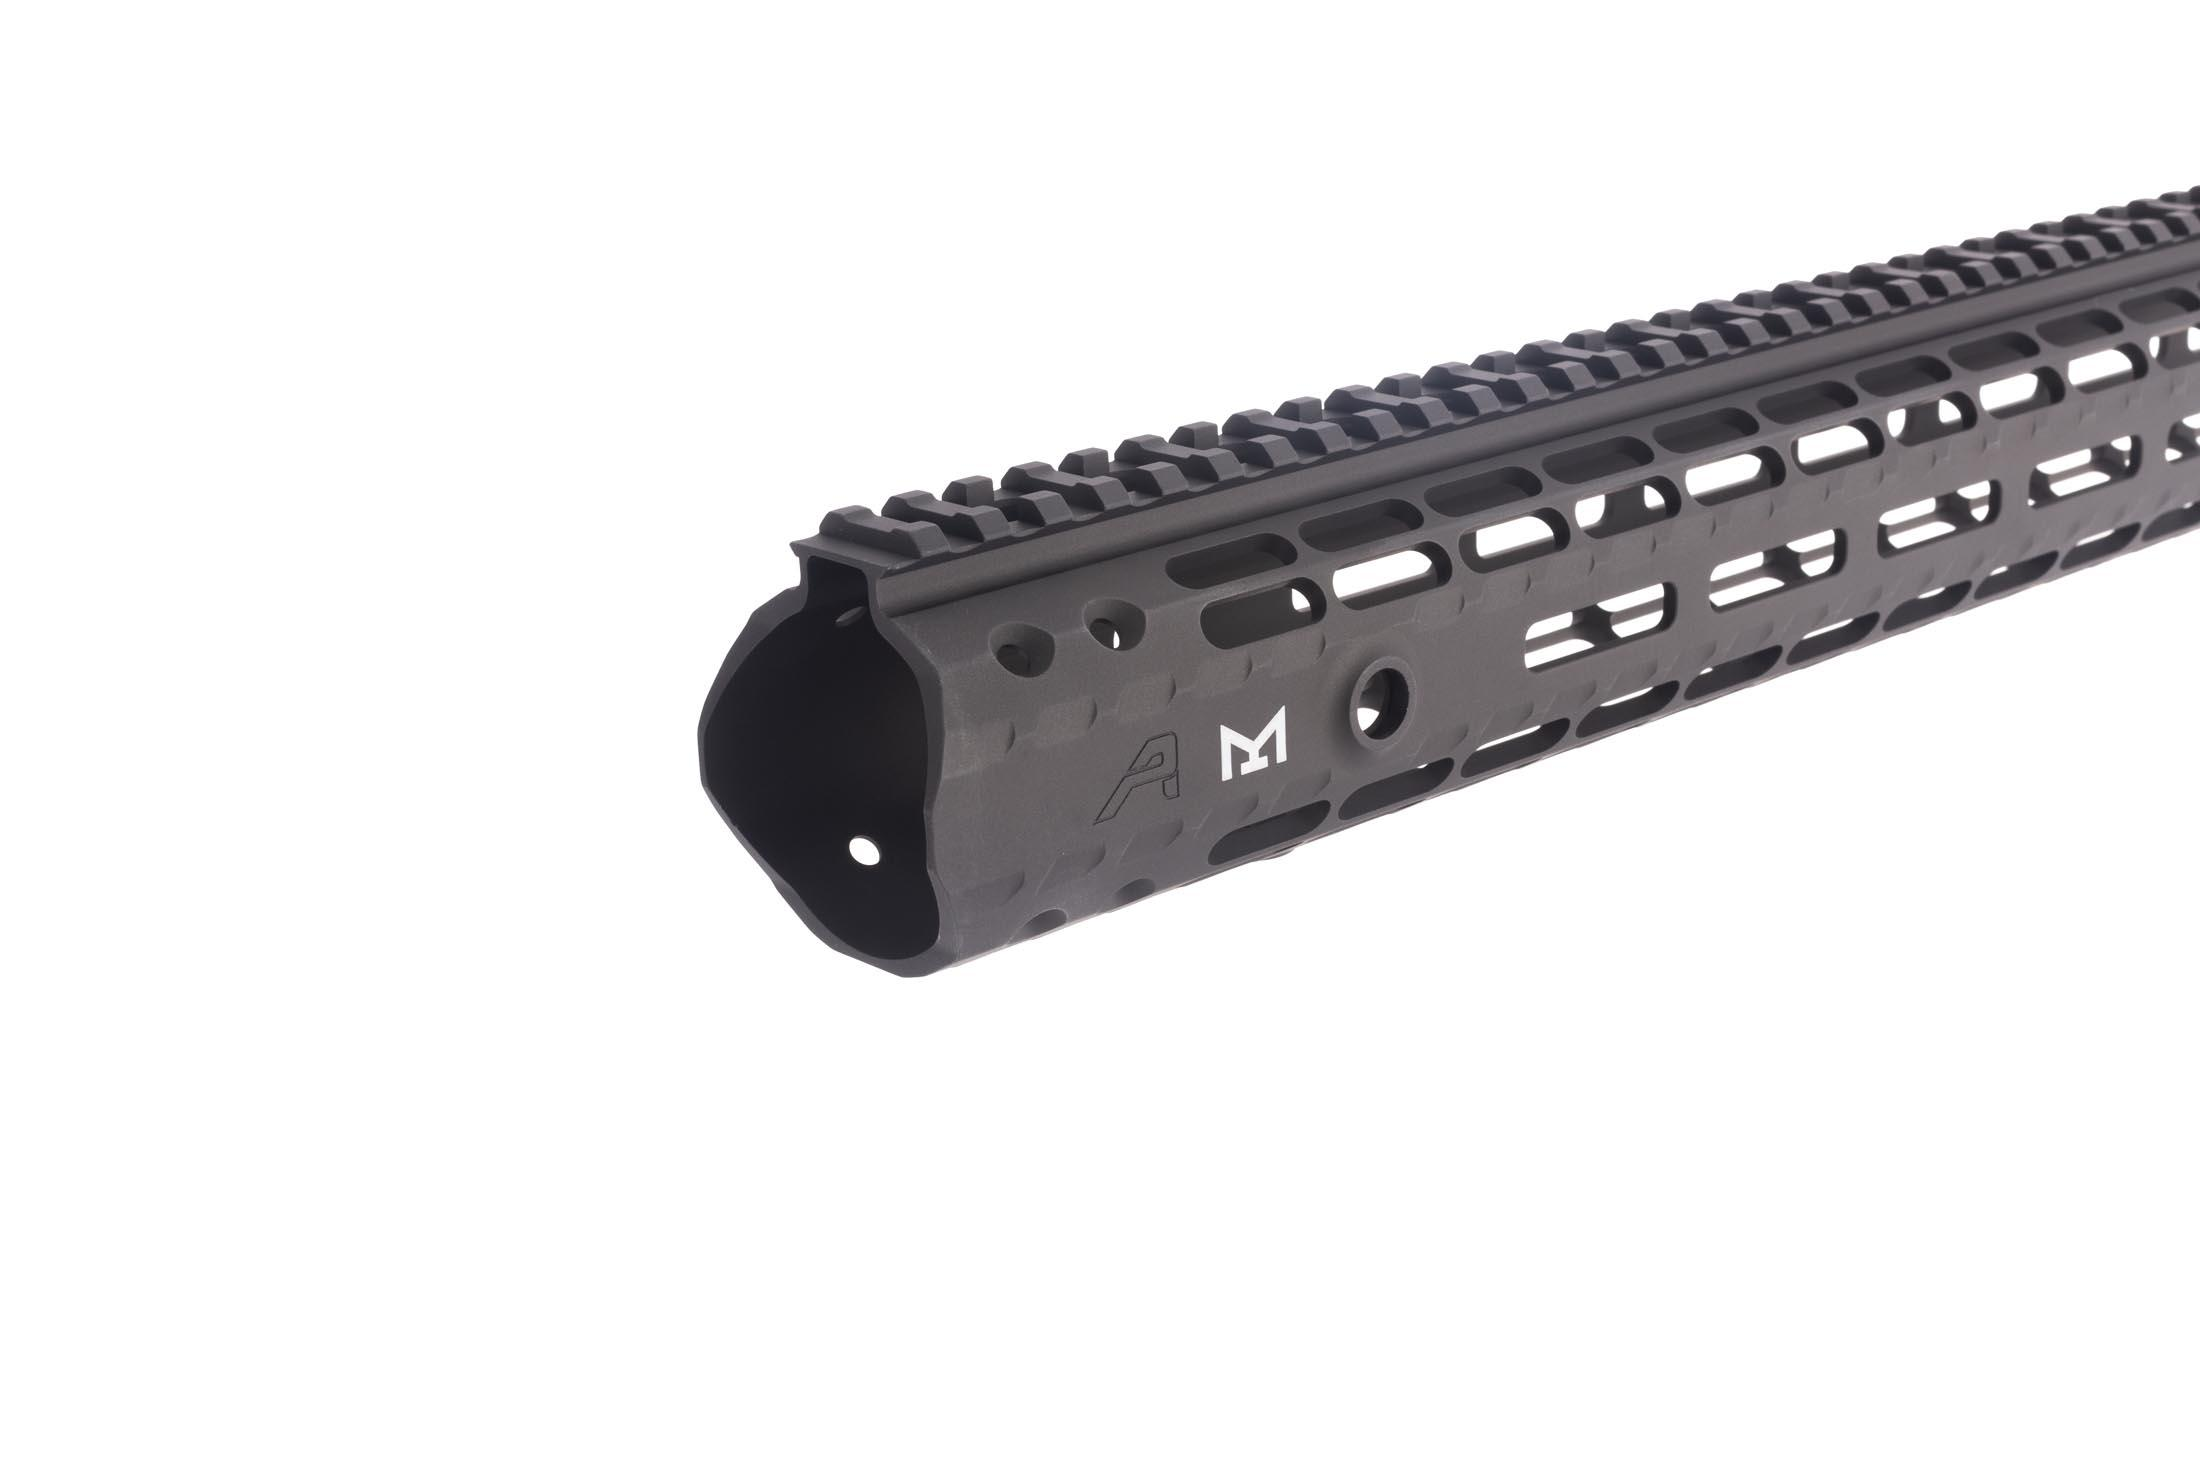 This Aero Precision .308 handguard is 15 inches long and is a great addition to your AR-10 build